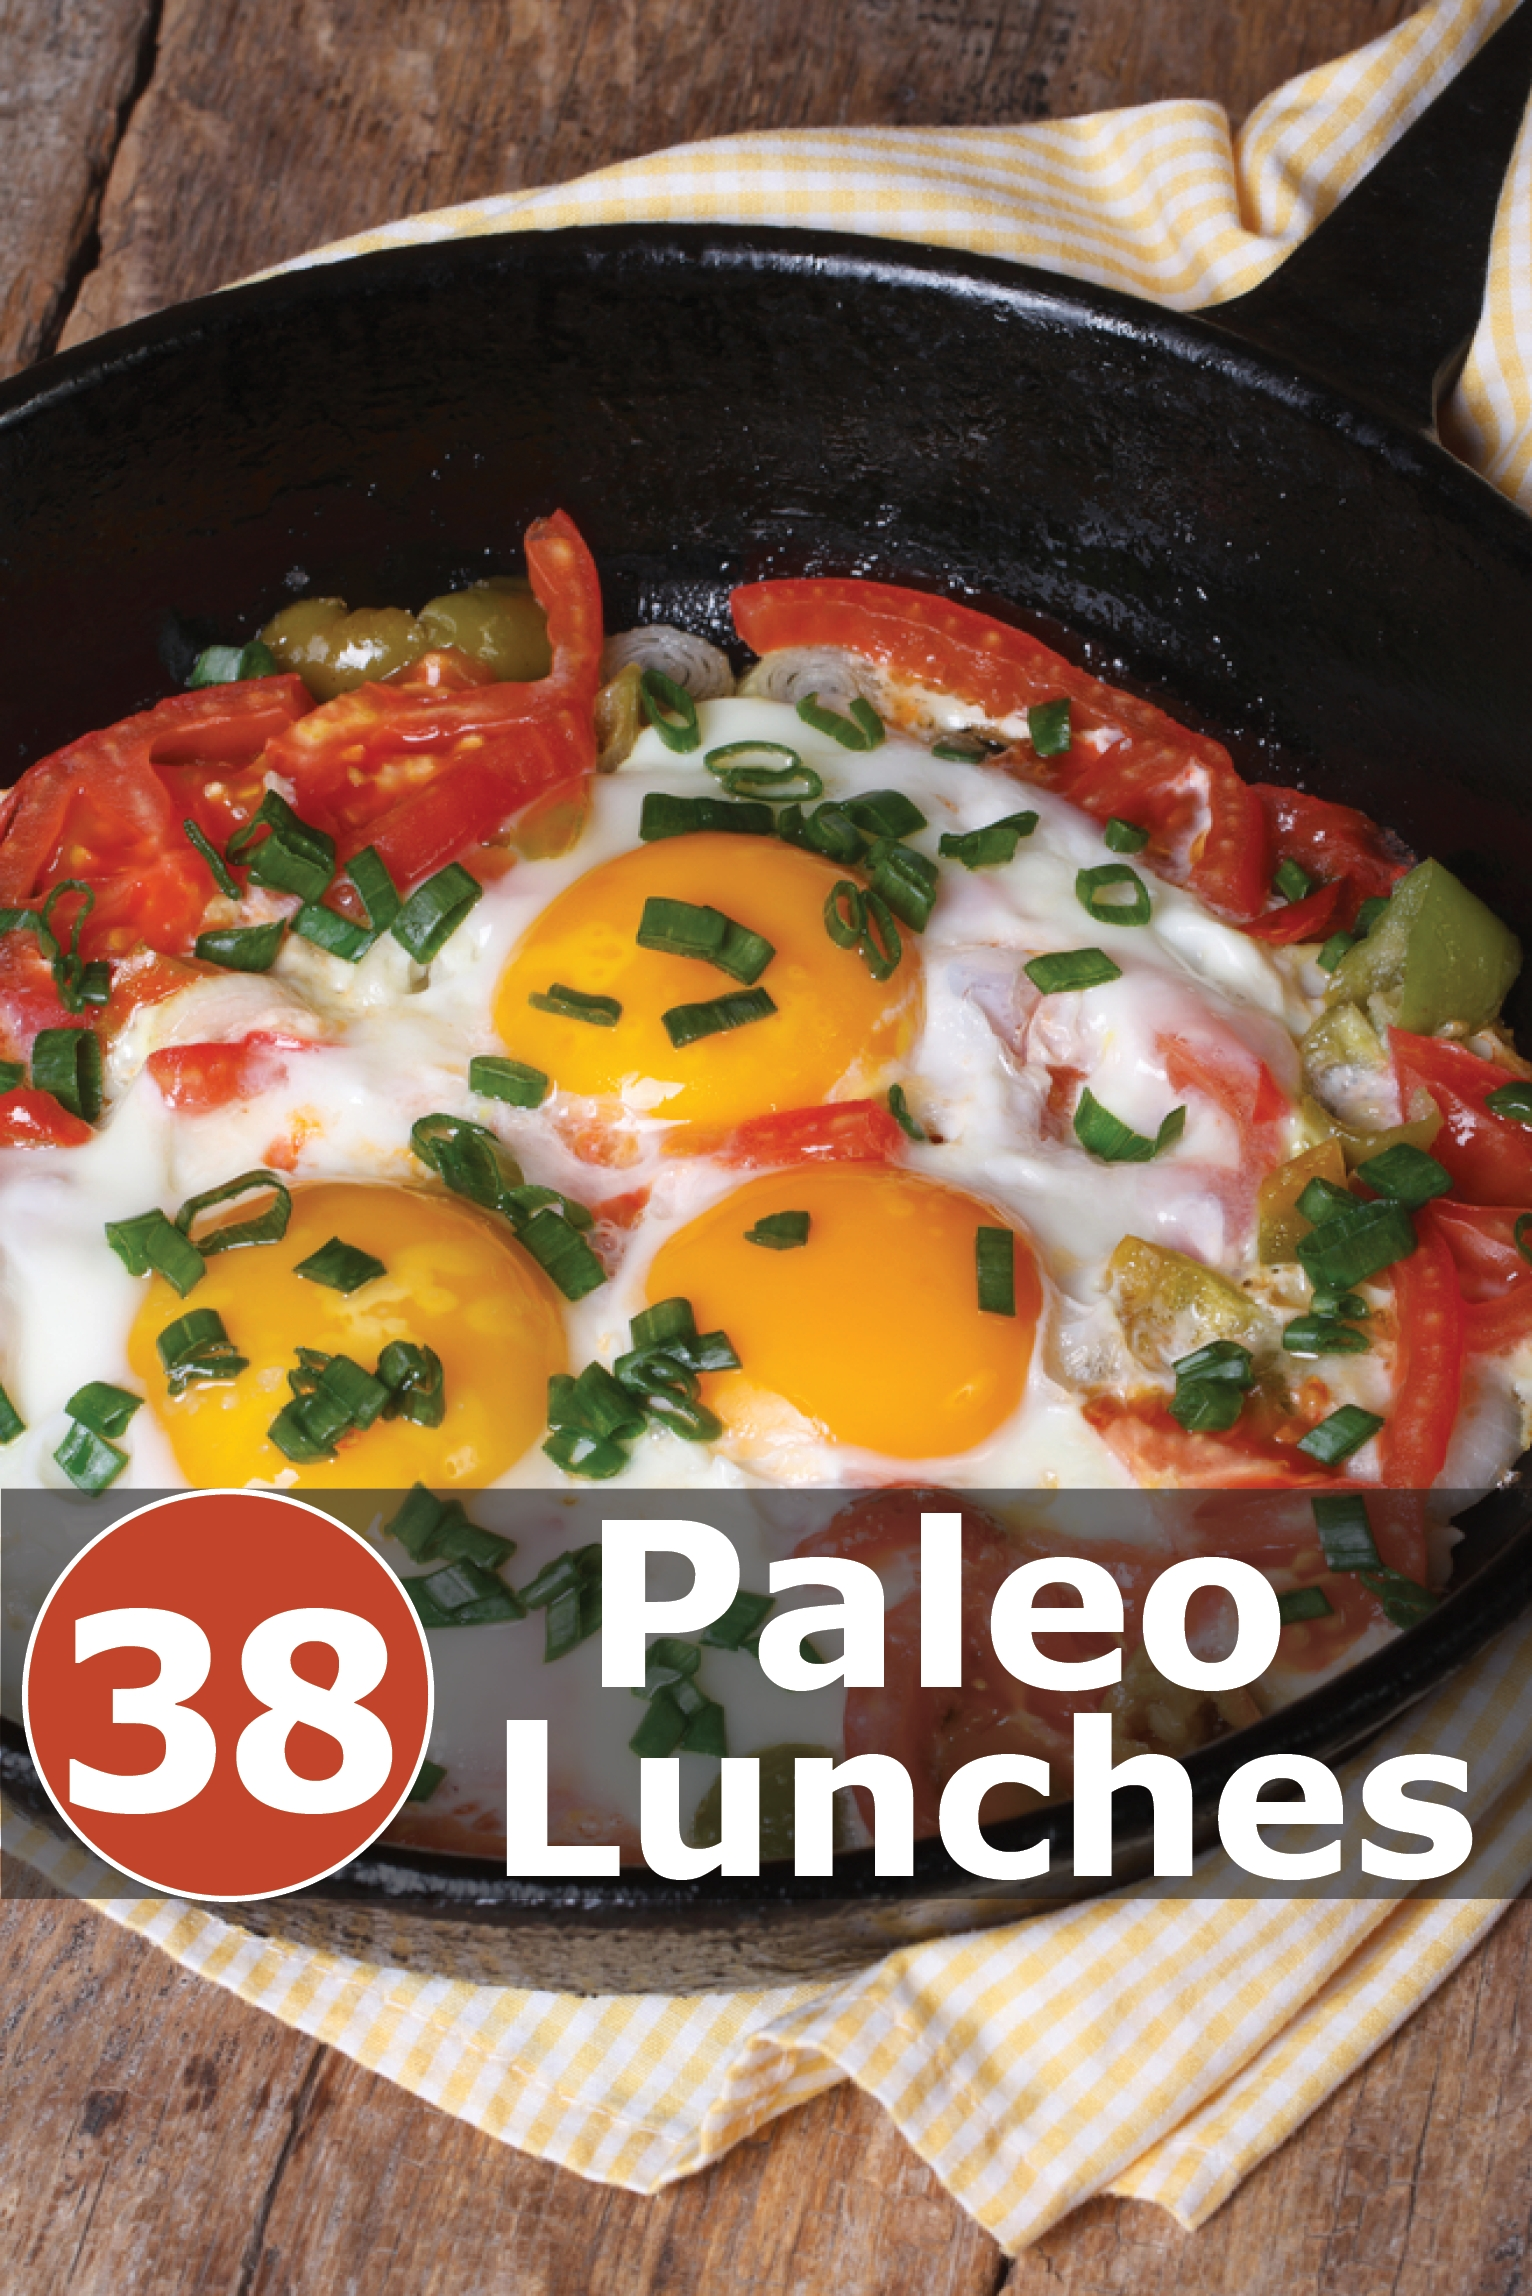 10 Lovable Paleo Lunch Ideas For Work 38 scrumptious paleo lunch recipes you should try today eat live life 2020